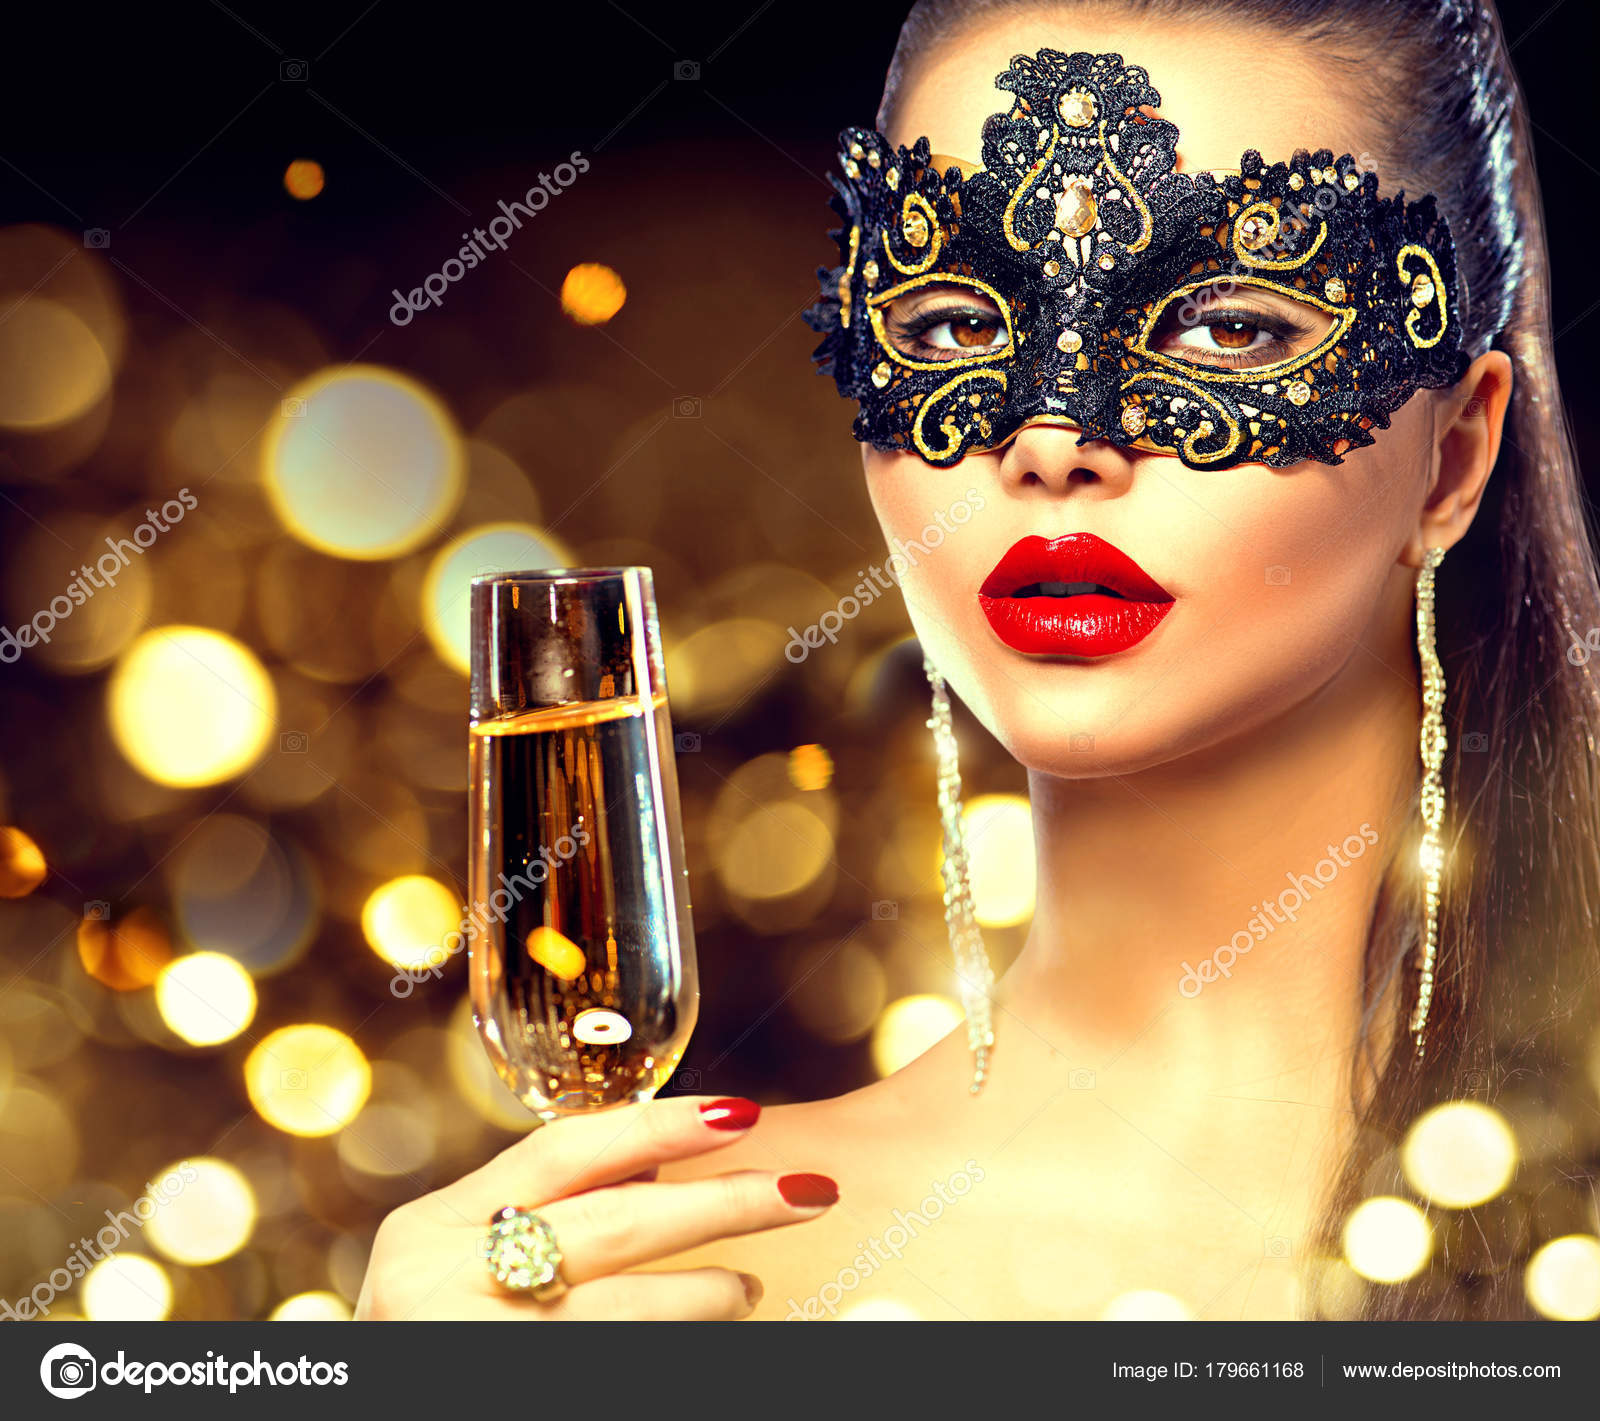 Woman Glass Champagne Lace Masquerade Mask Face Stock Photo